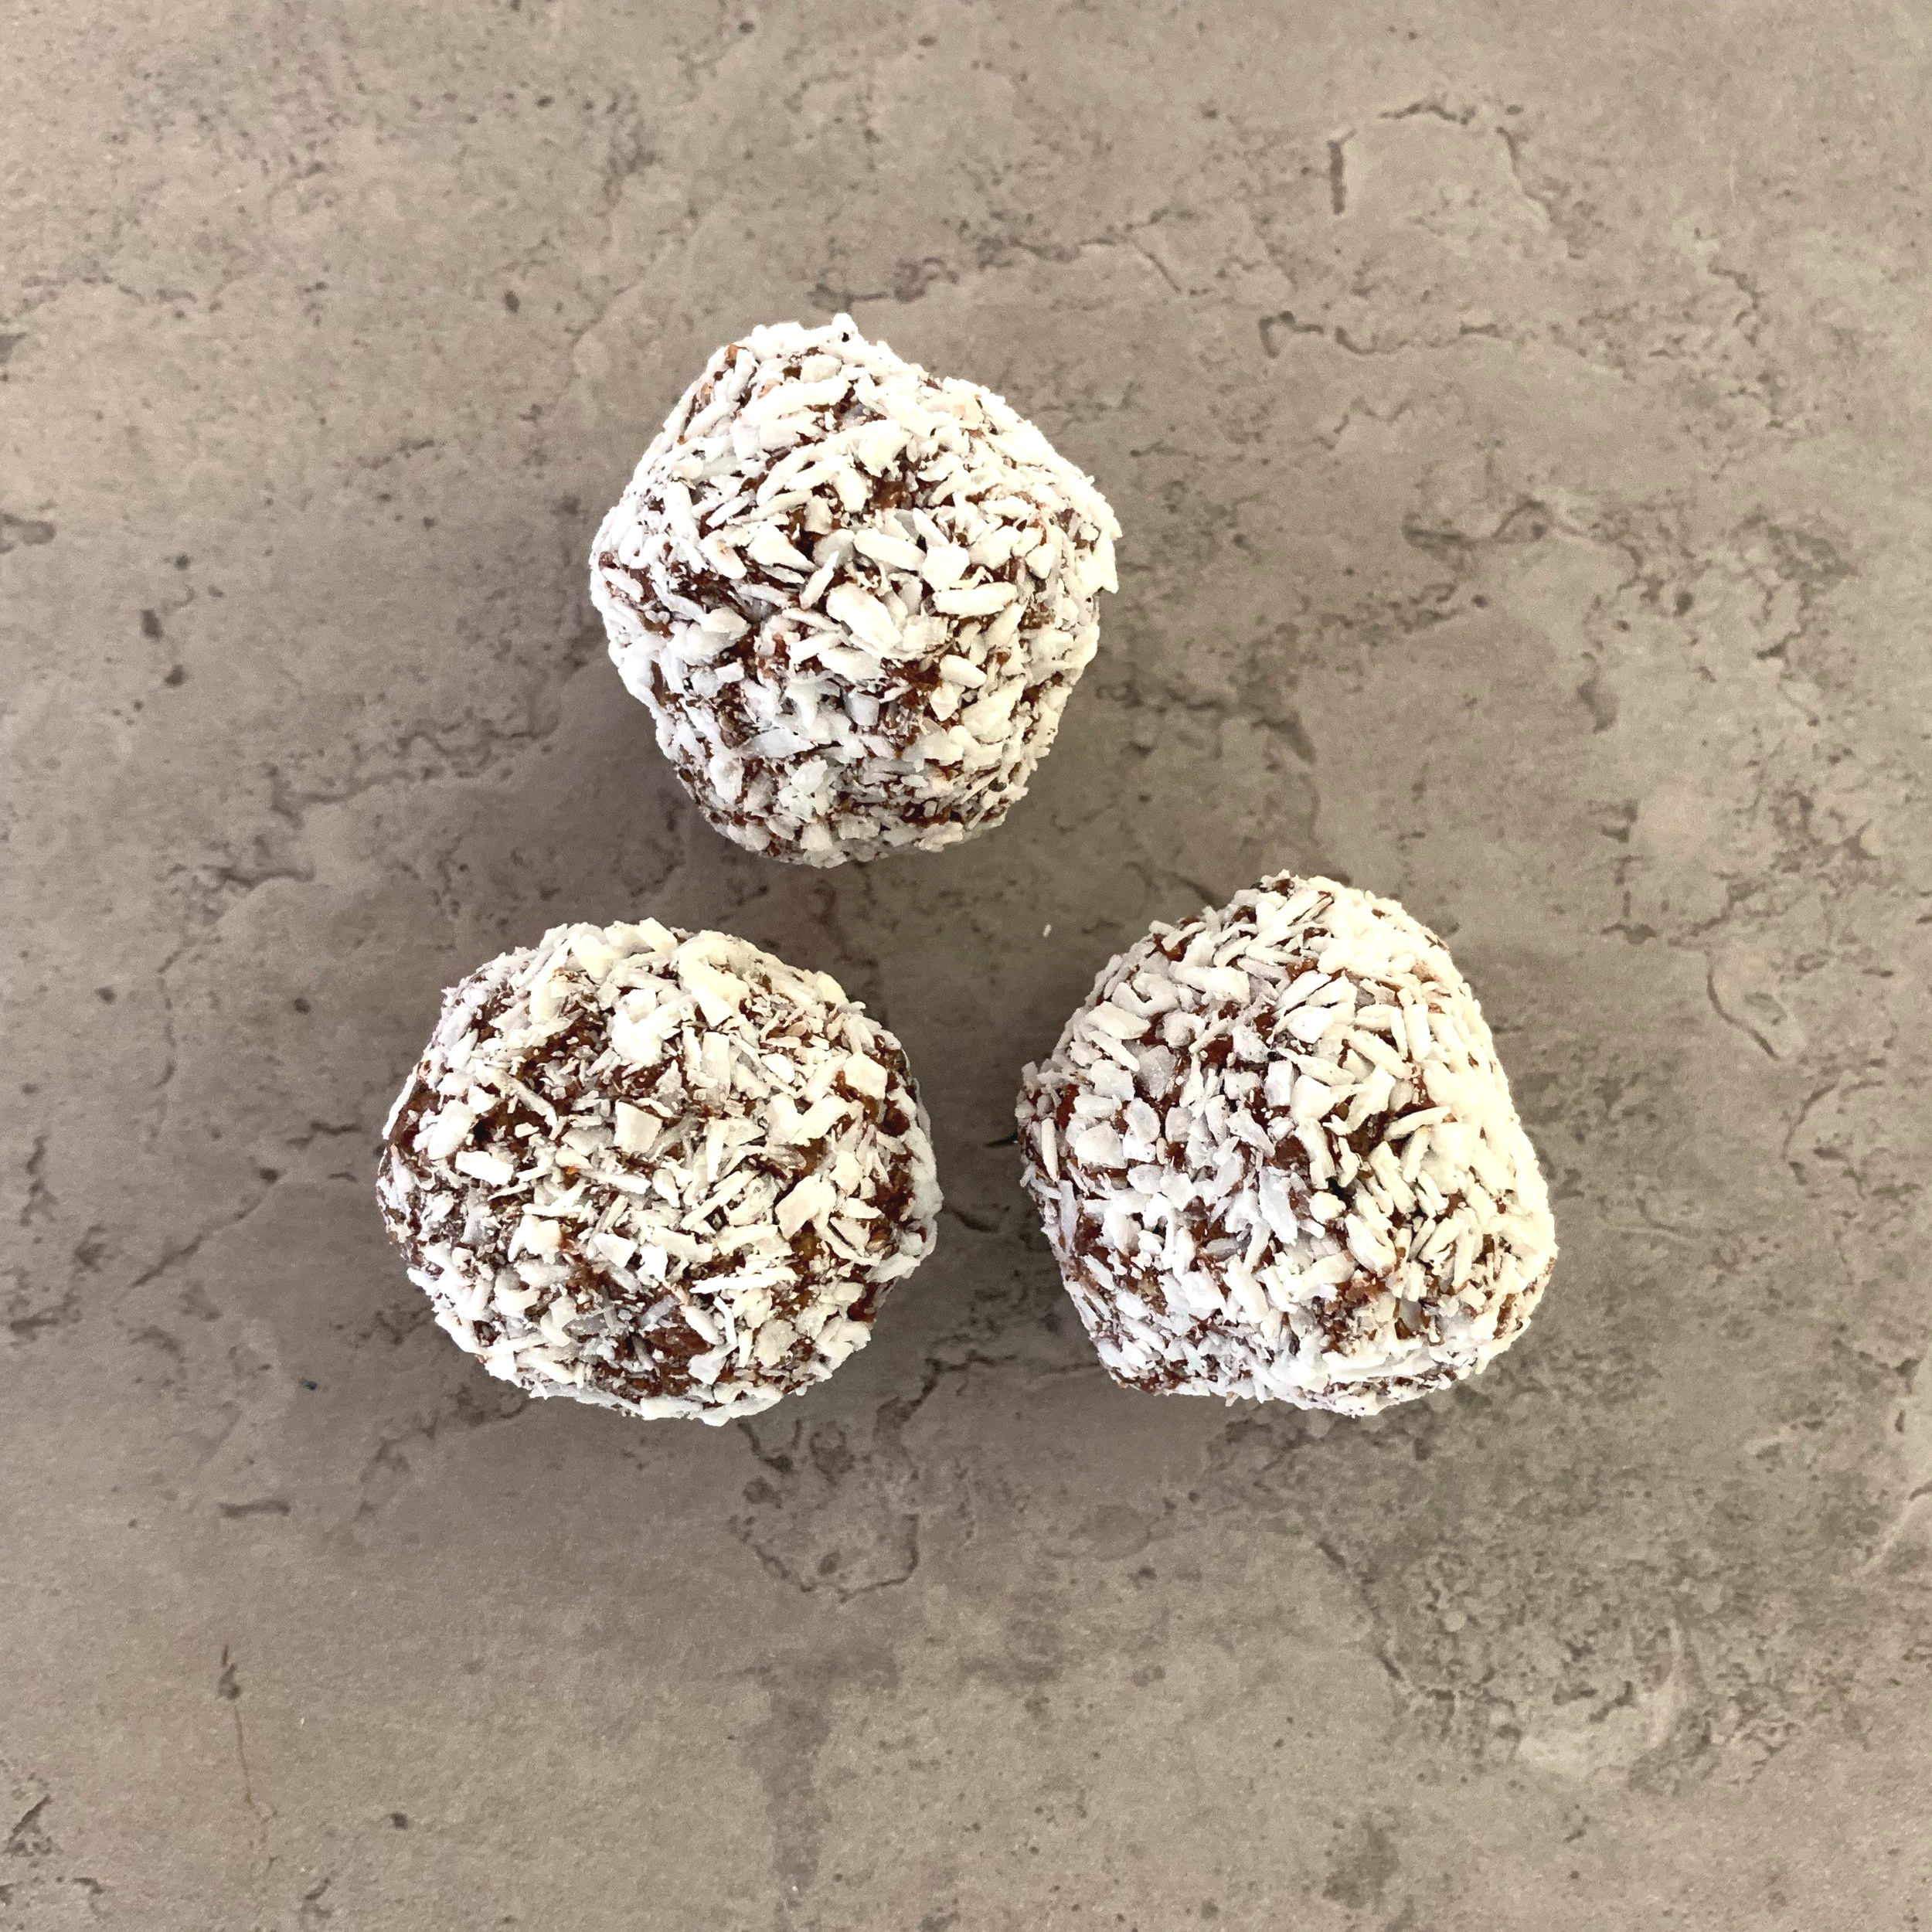 FLAPJACK BALL Ingredients:  Dates,  oats  (gluten free), coconut, coconut oil, agave, chia seed, cacao, coffee instant, salt